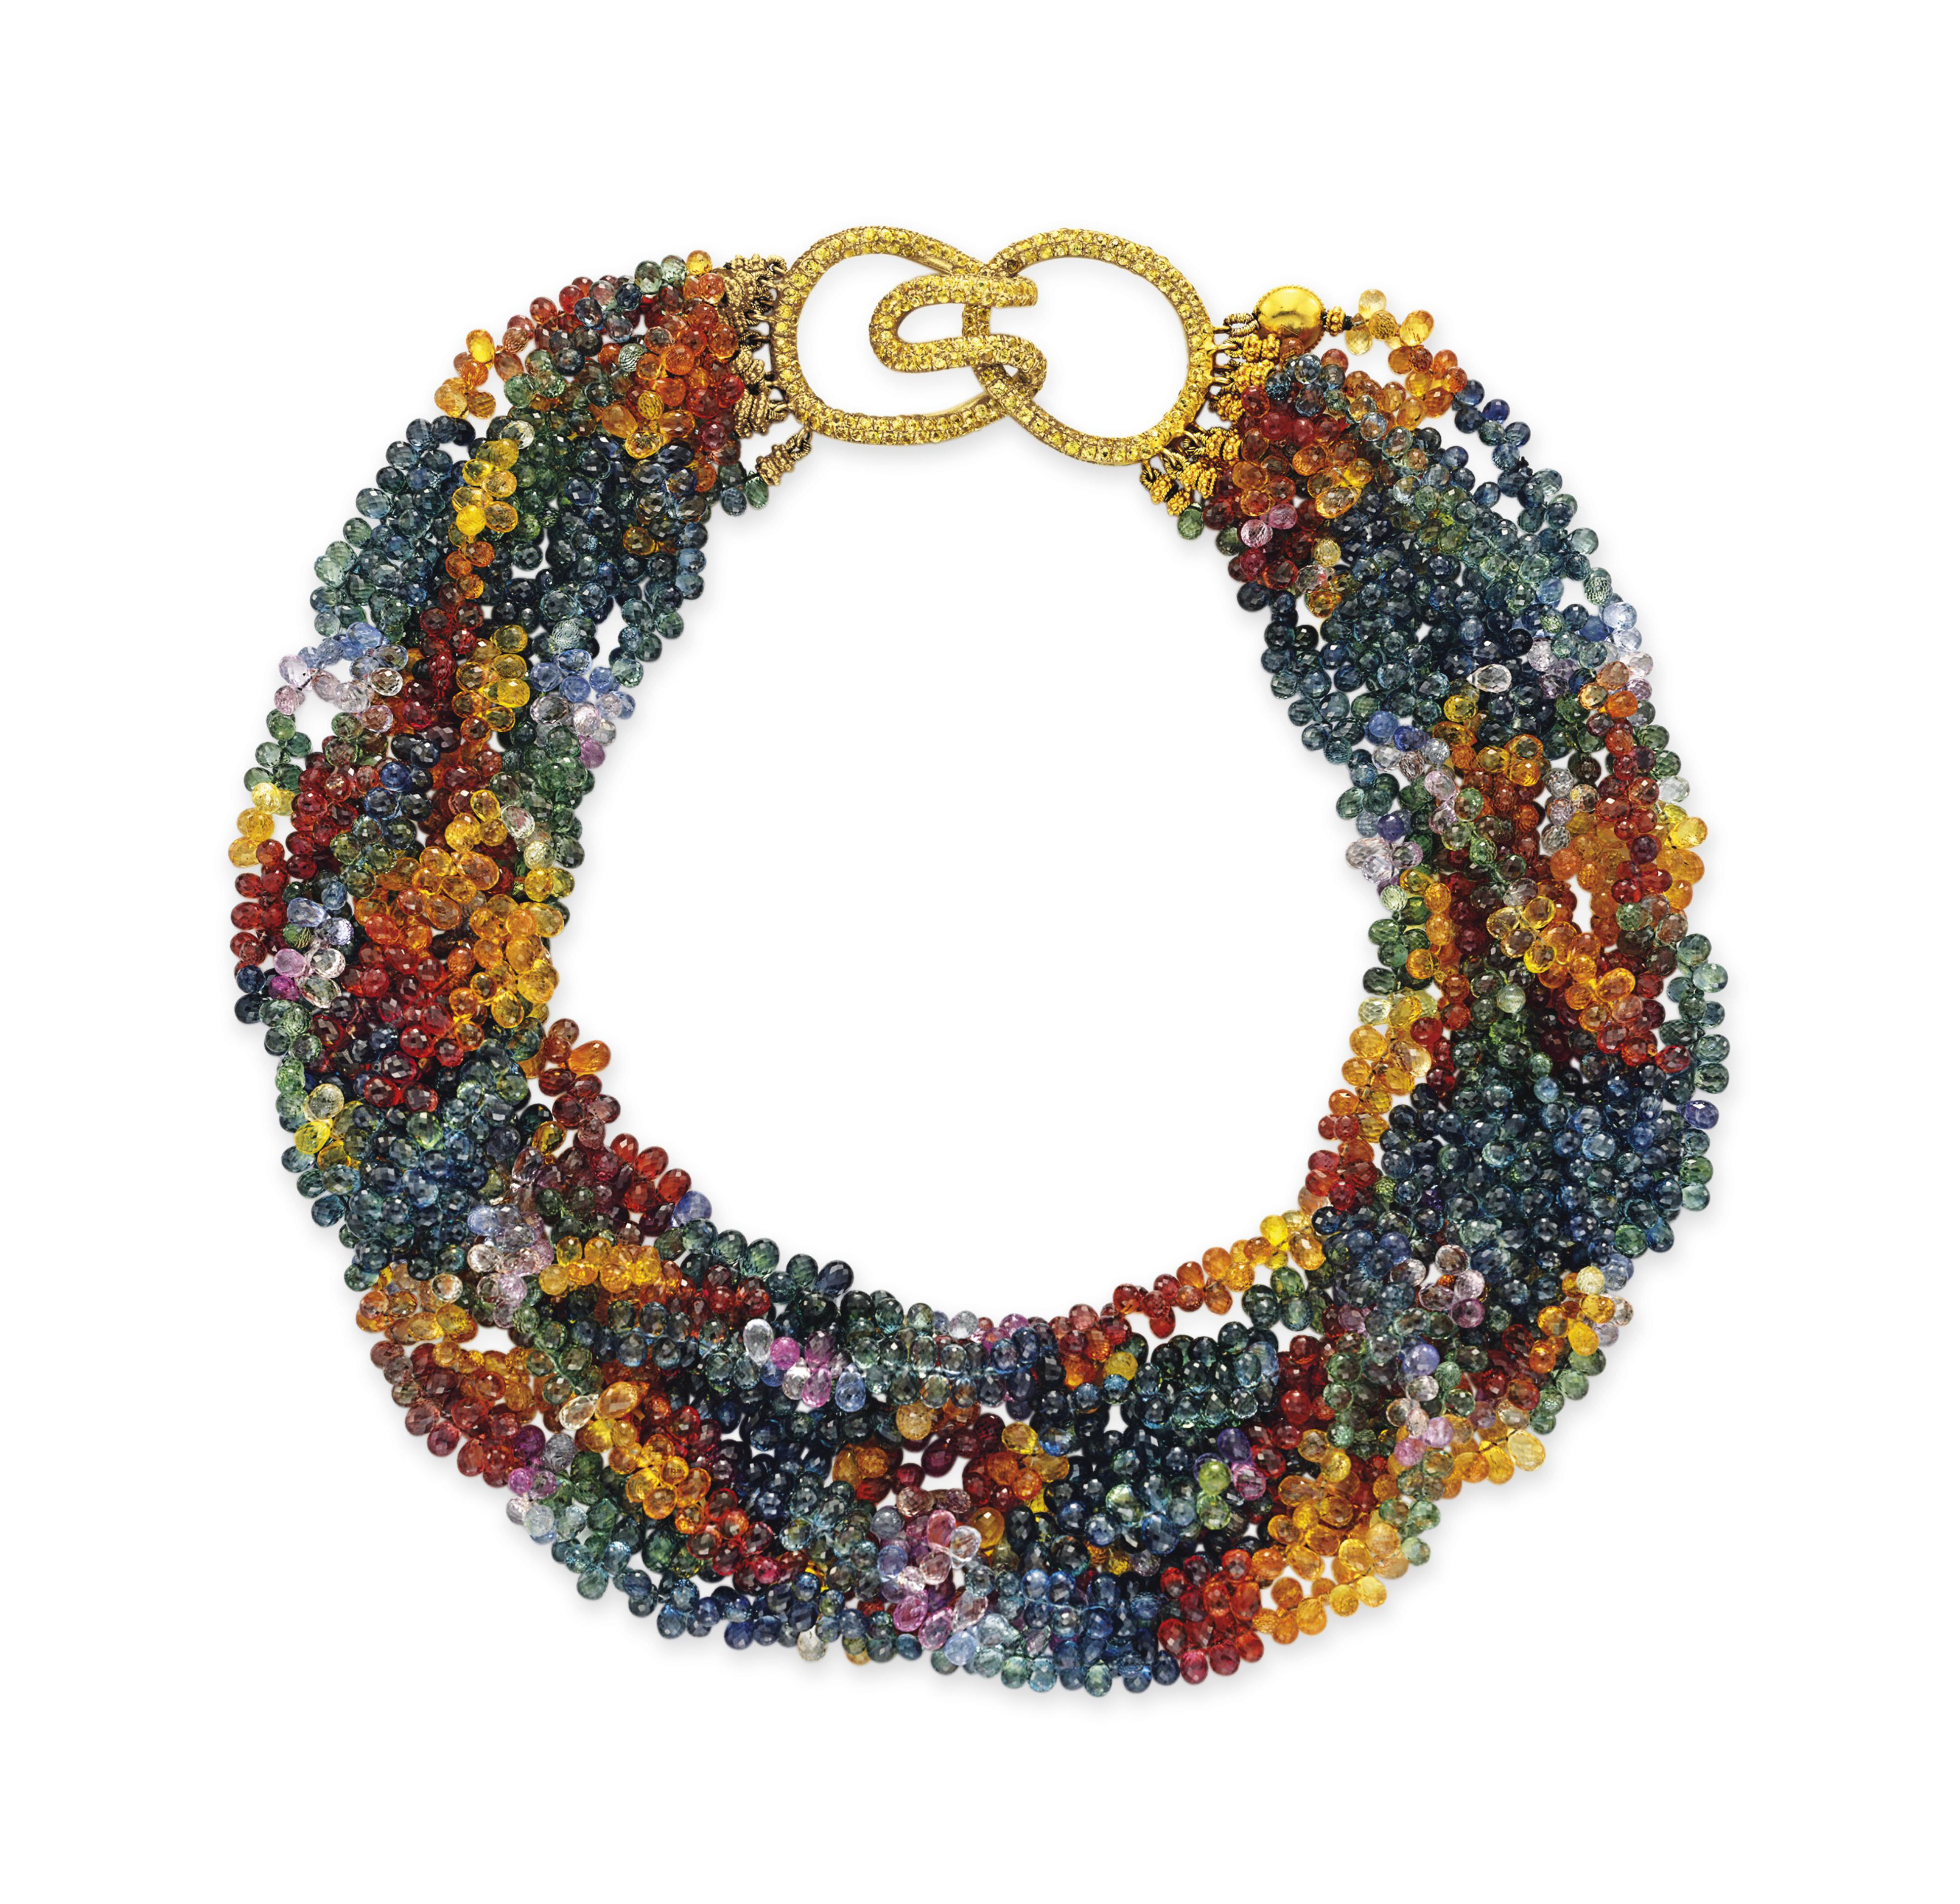 A MULTI-COLORED SAPPHIRE BEAD NECKLACE, BY TAMZEN Z, ANN ZIFF